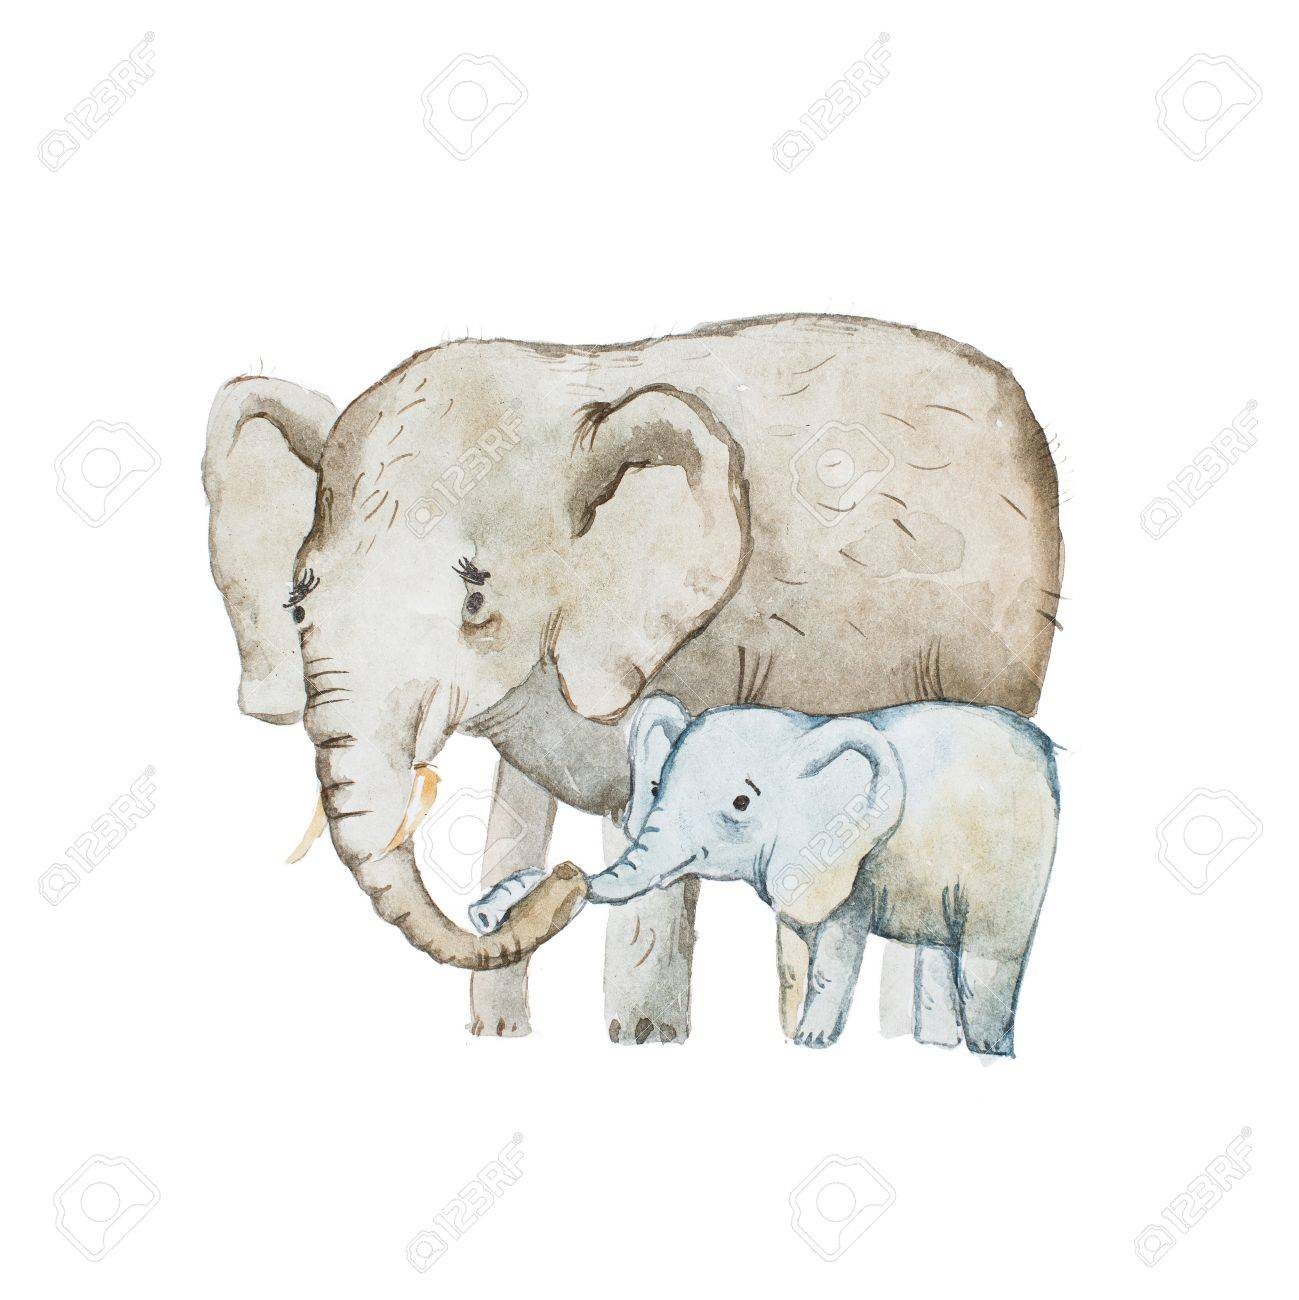 Watercolor drawing of elephant family, mother and calf - 82237167